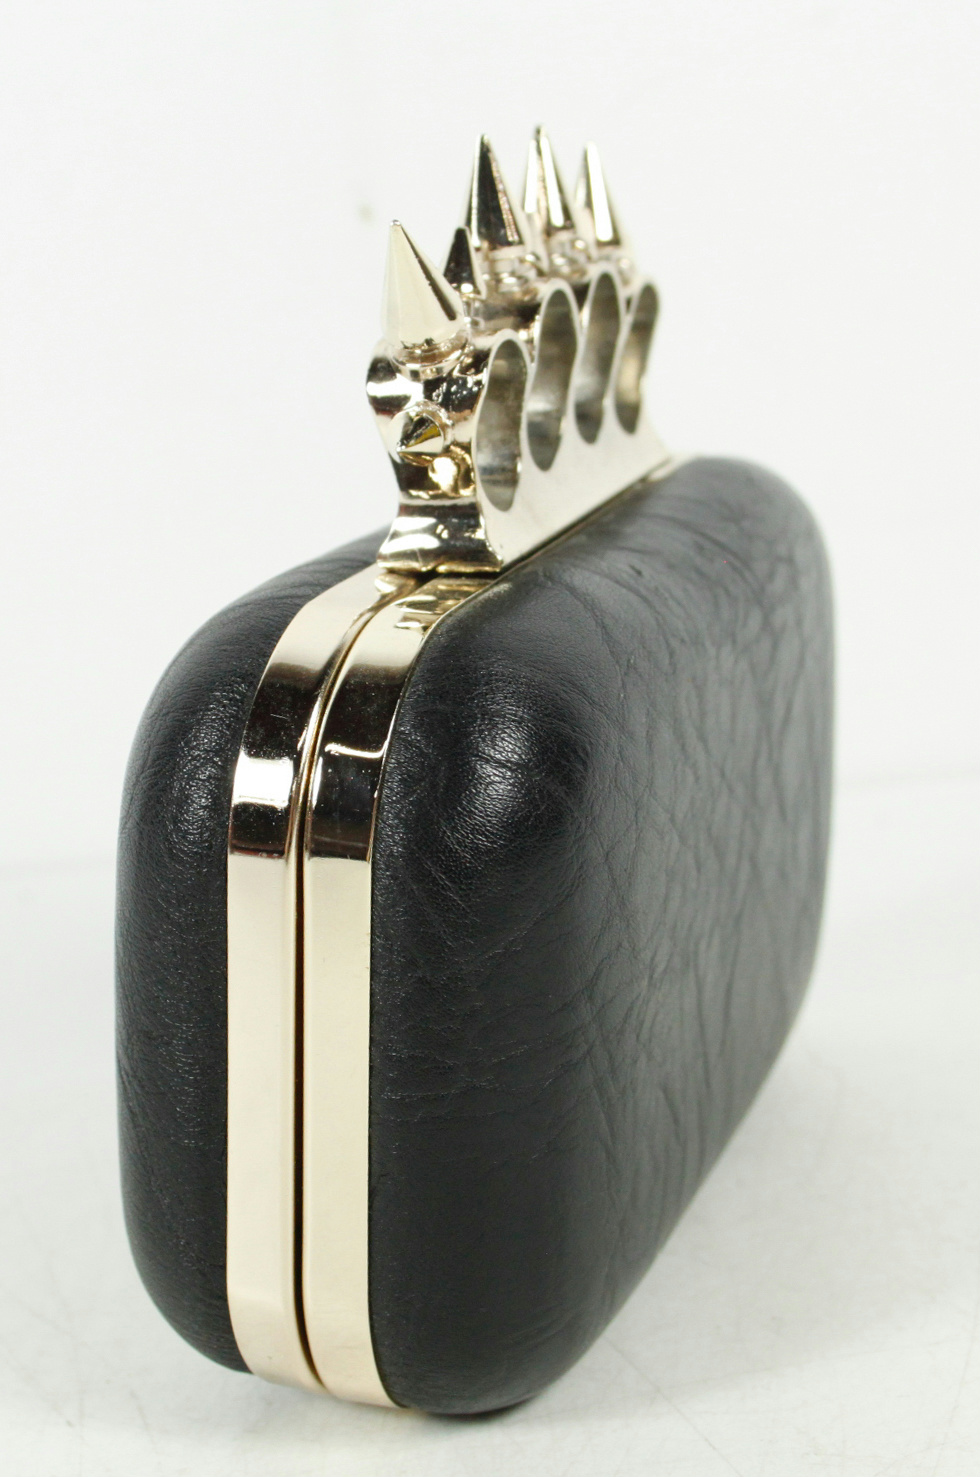 e37908d53399 Black Clutch Bag With Silver Chain Strap | Stanford Center for ...